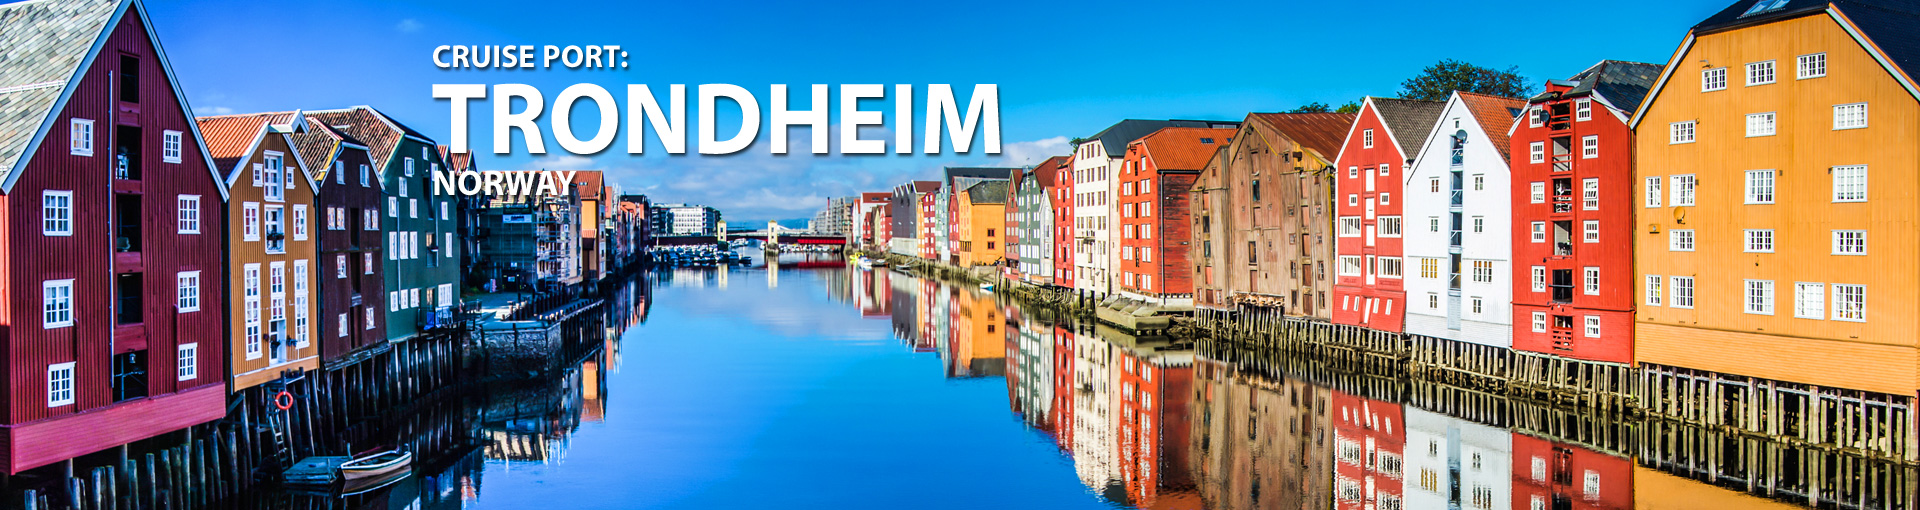 Cruise to Trondheim, Norway